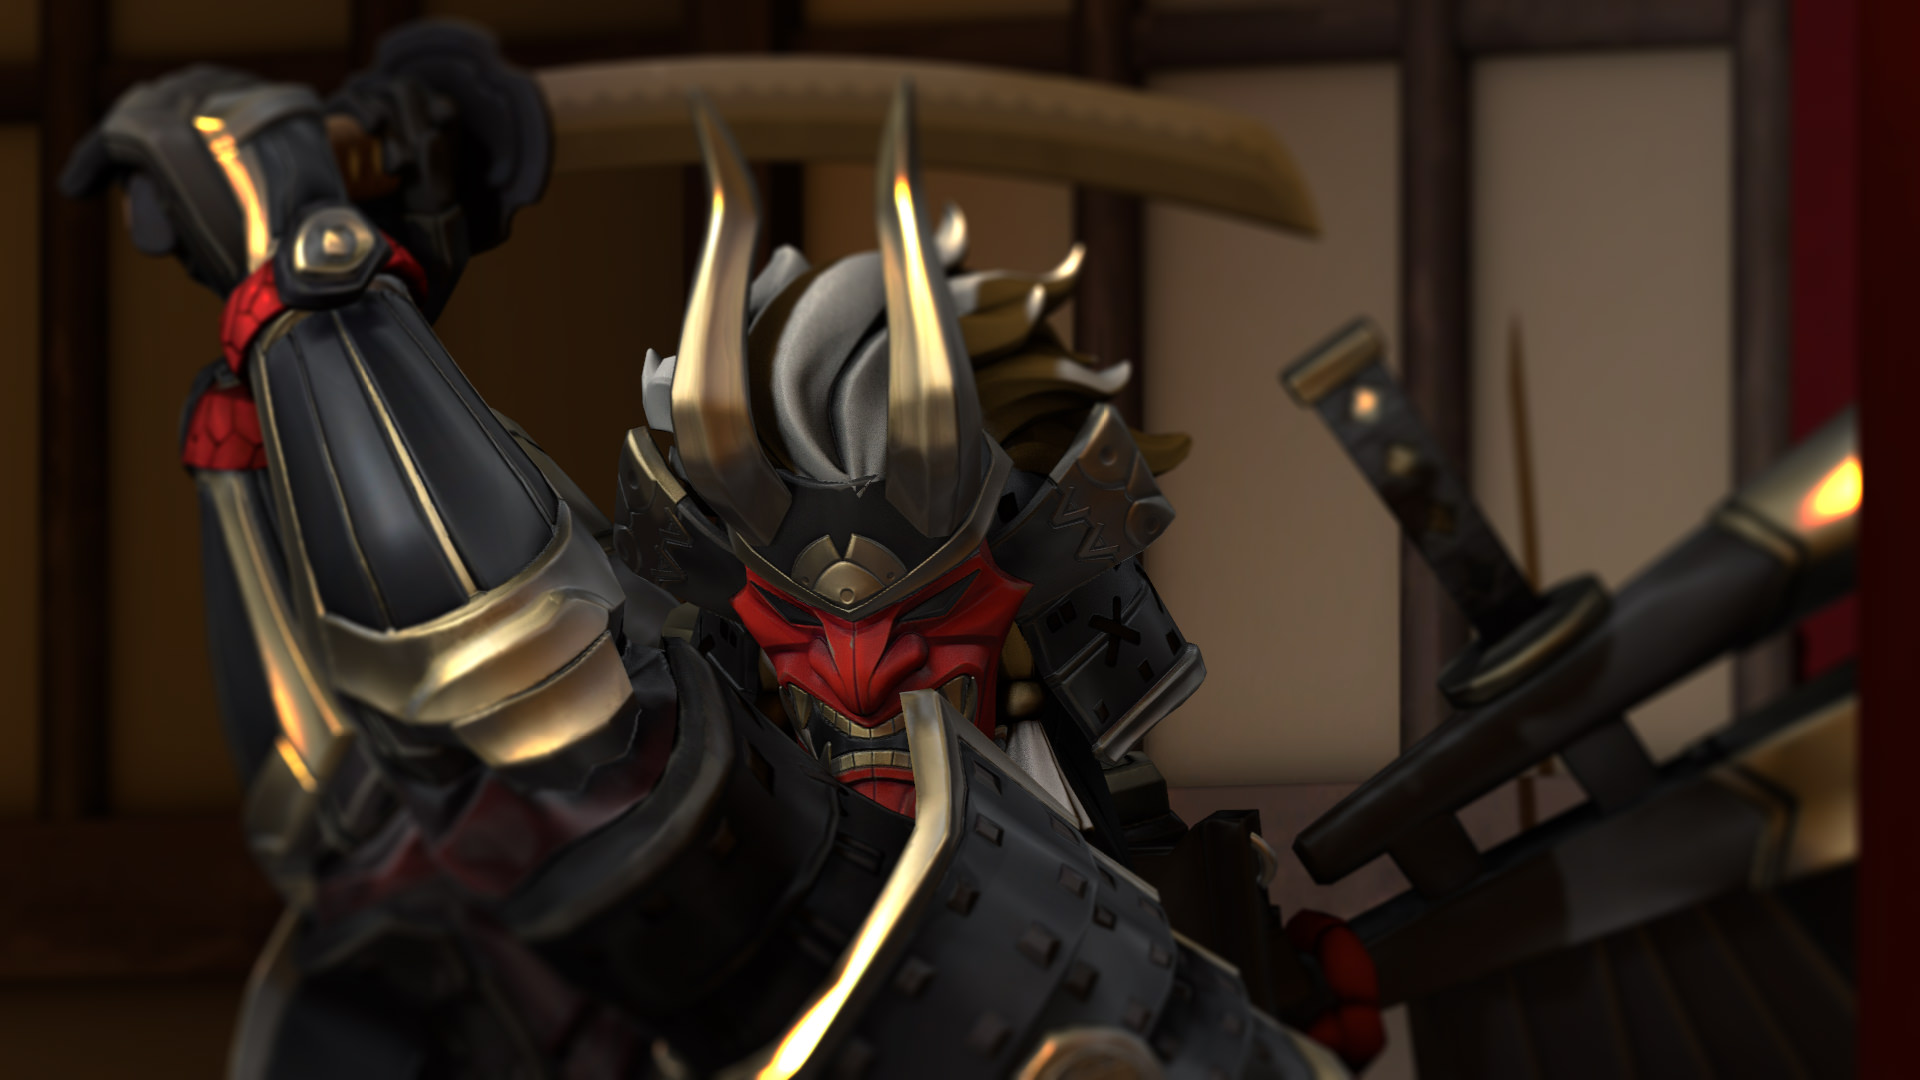 First time using SFM made a thing with new Shogun model   Album 1920x1080